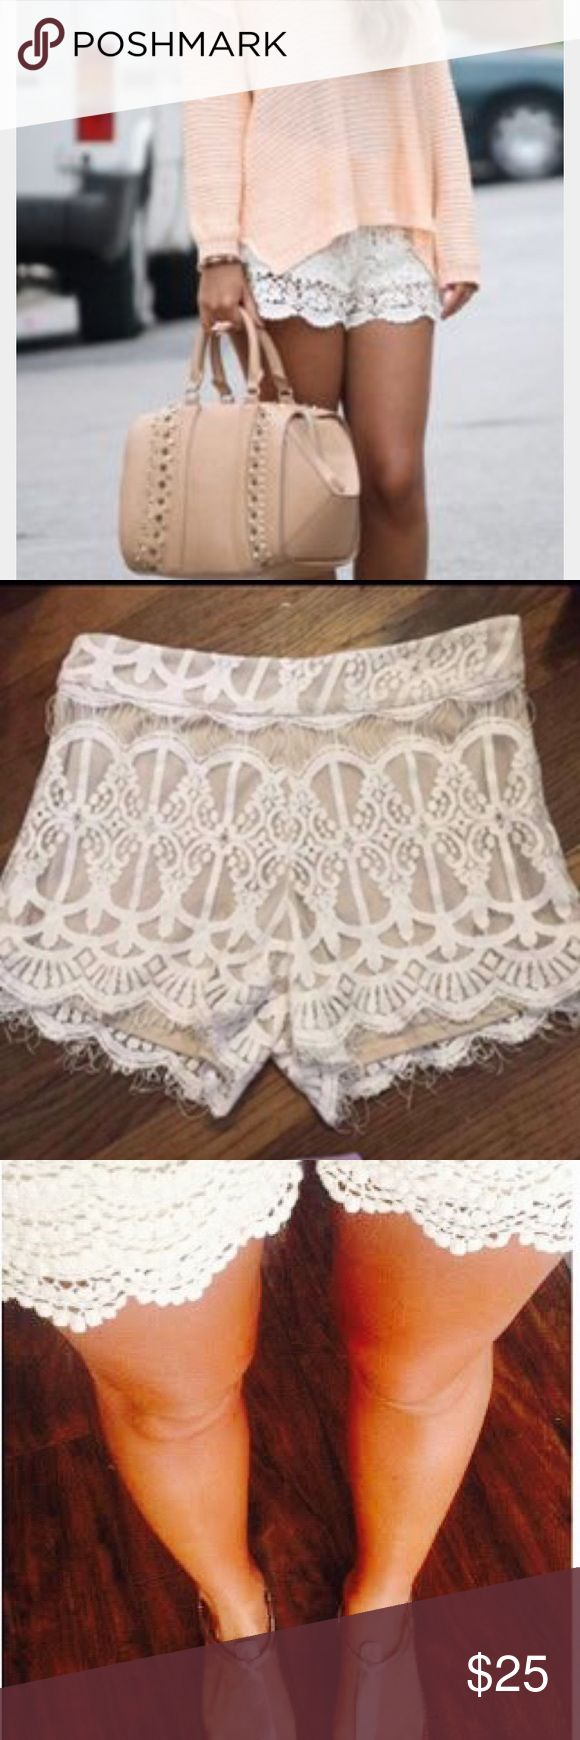 Lace shorts size small Cream lace shorts with nude underlay. Not see through at all, can be dressed up or down. Depending on your height/weight will determine length, I'm short 5'3 but big hips so they were too tight and short for my preference. So pretty and versatile. Zips up side..not elastic band, well made. Shorts